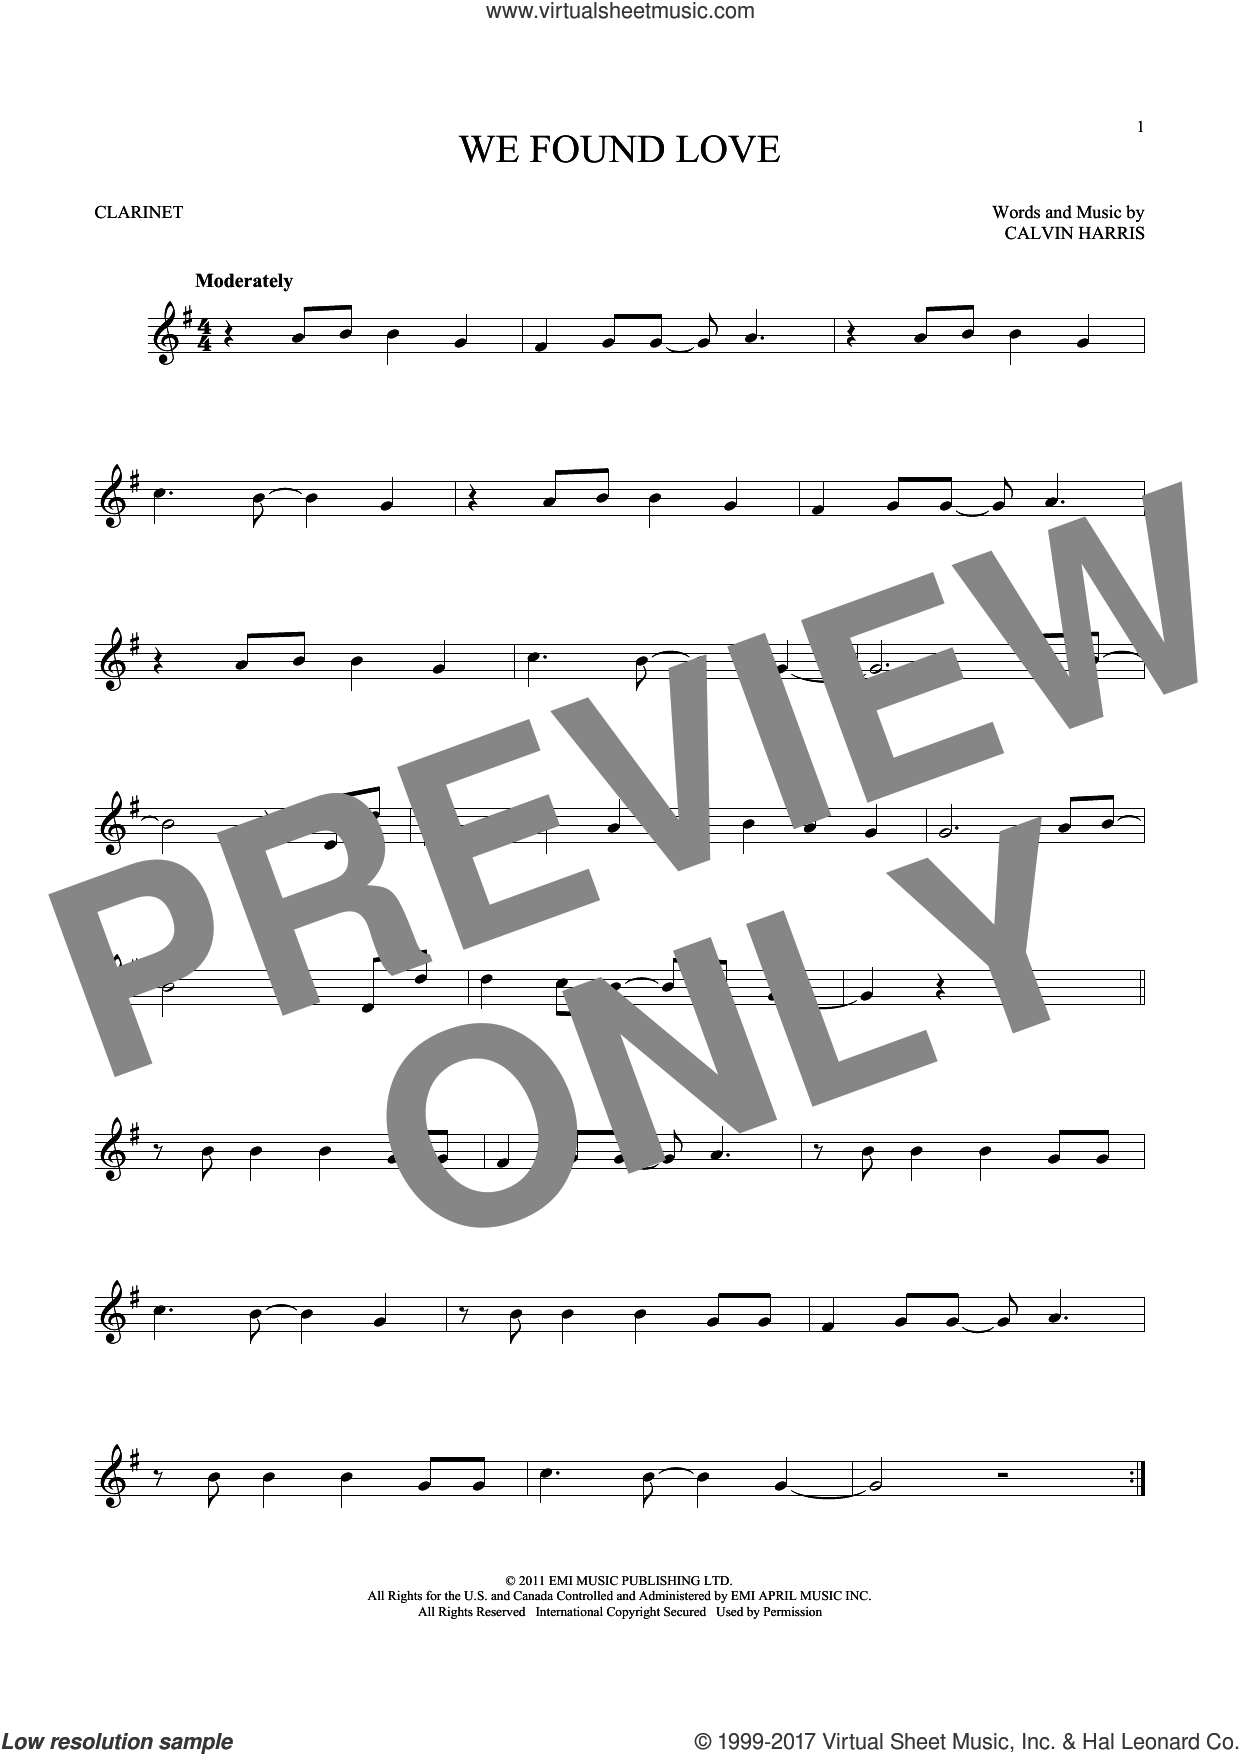 We Found Love sheet music for clarinet solo by Rihanna featuring Calvin Harris and Calvin Harris, wedding score, intermediate skill level